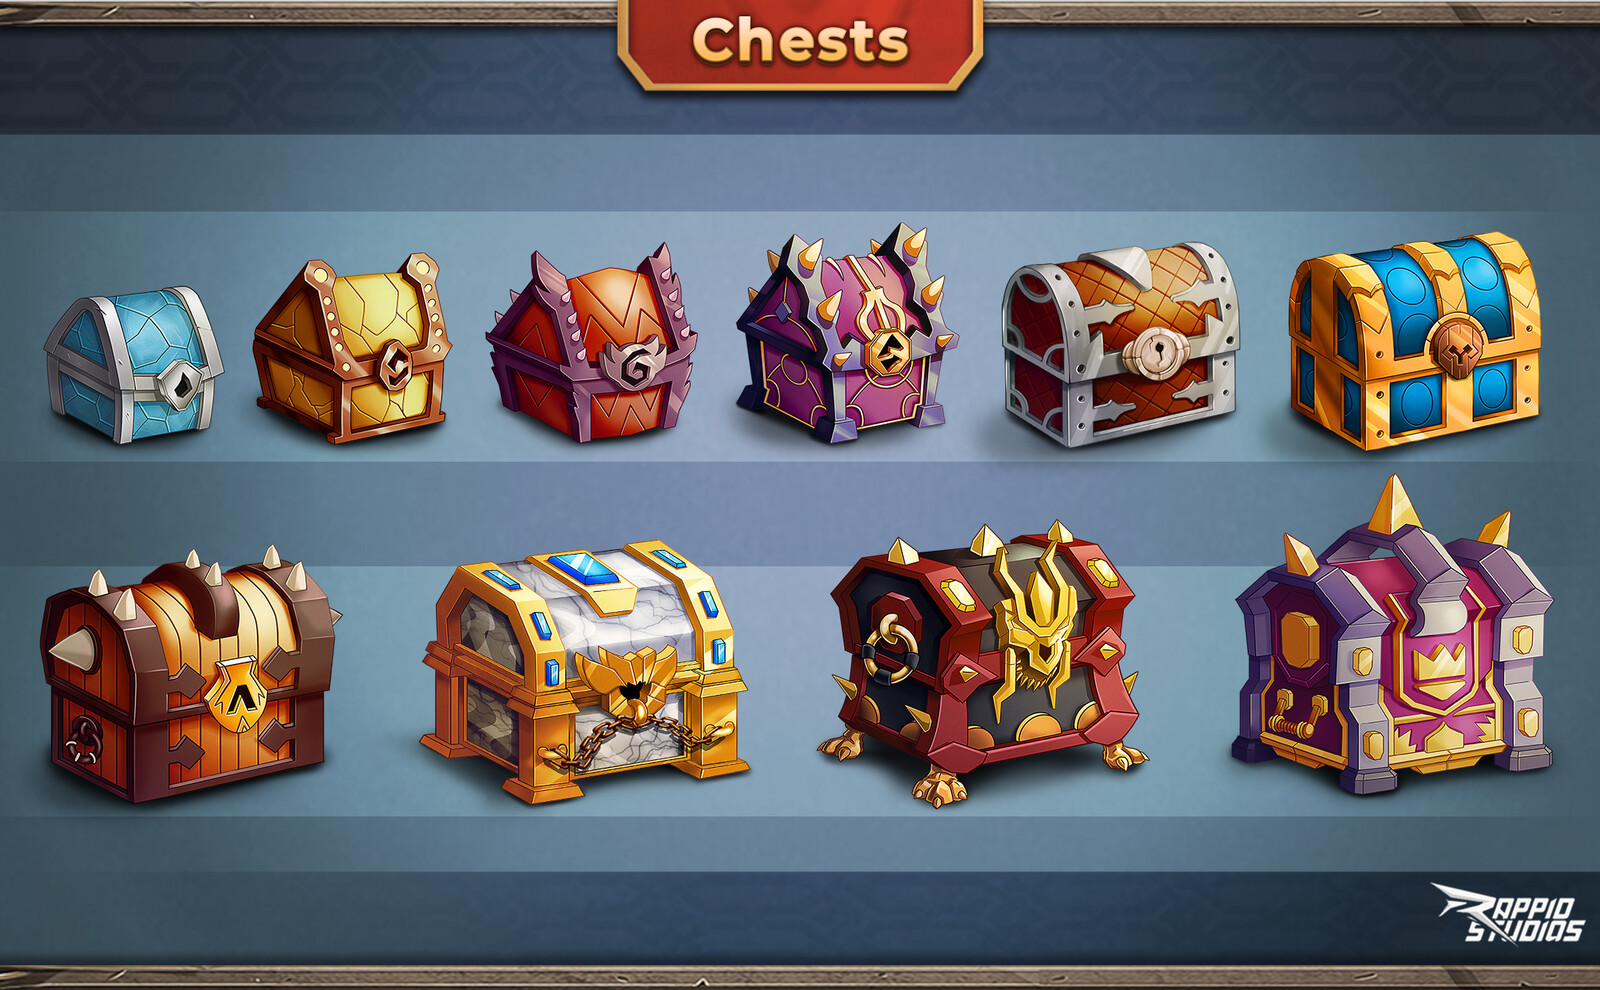 All the chest raritites